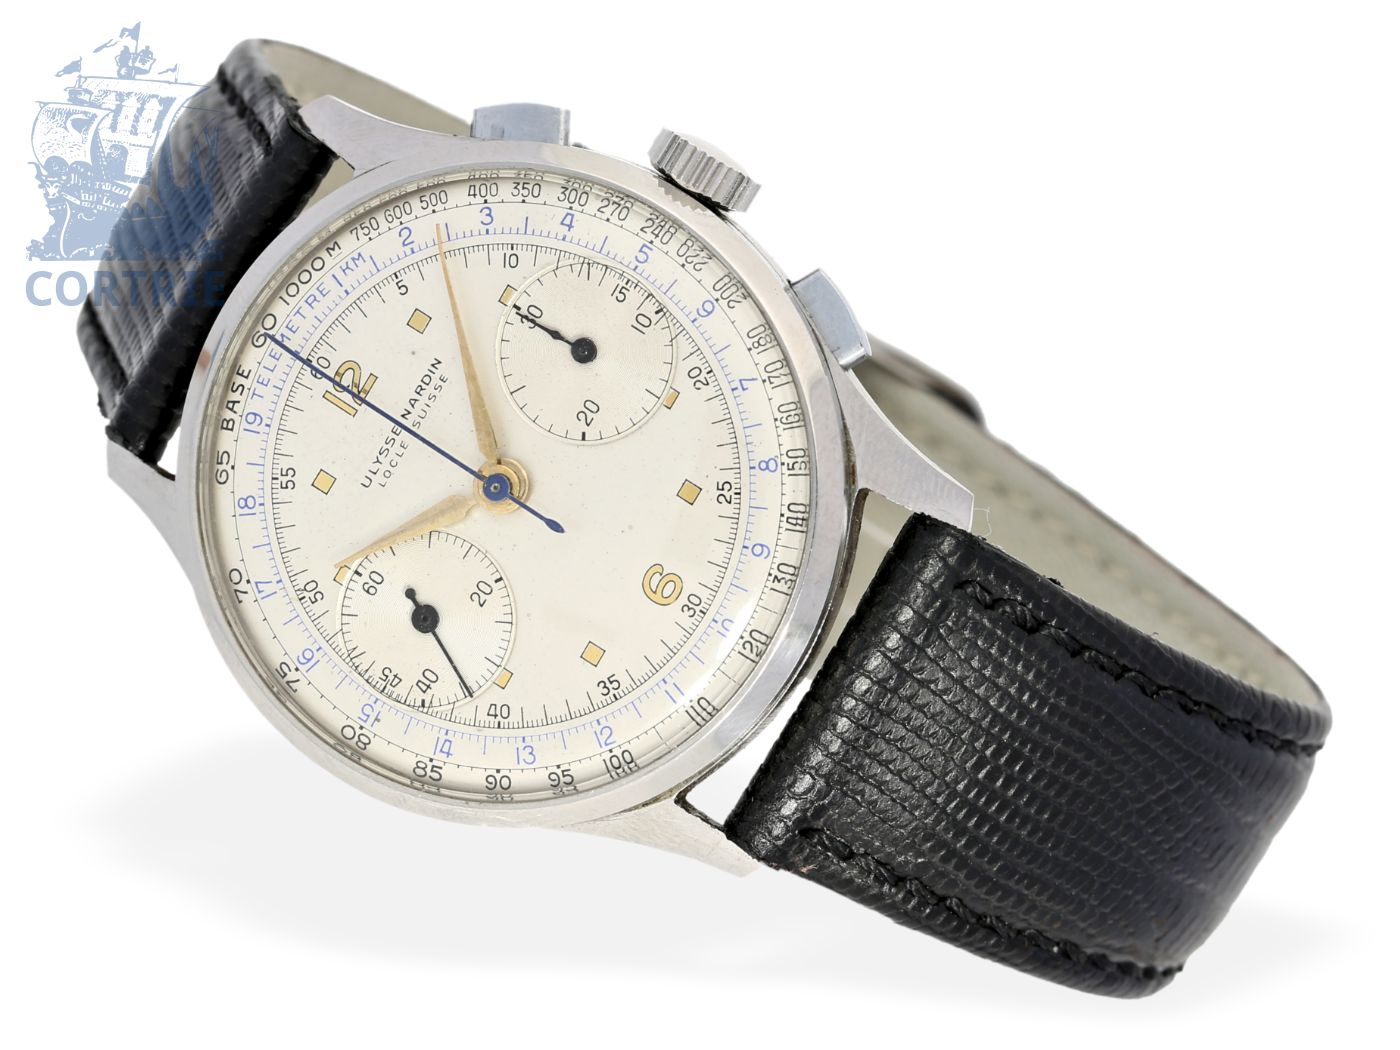 Wristwatch: fine and big Ulysse Nardin steel chronograph with tachymeter scale & telemeter scale, ca. 1945-